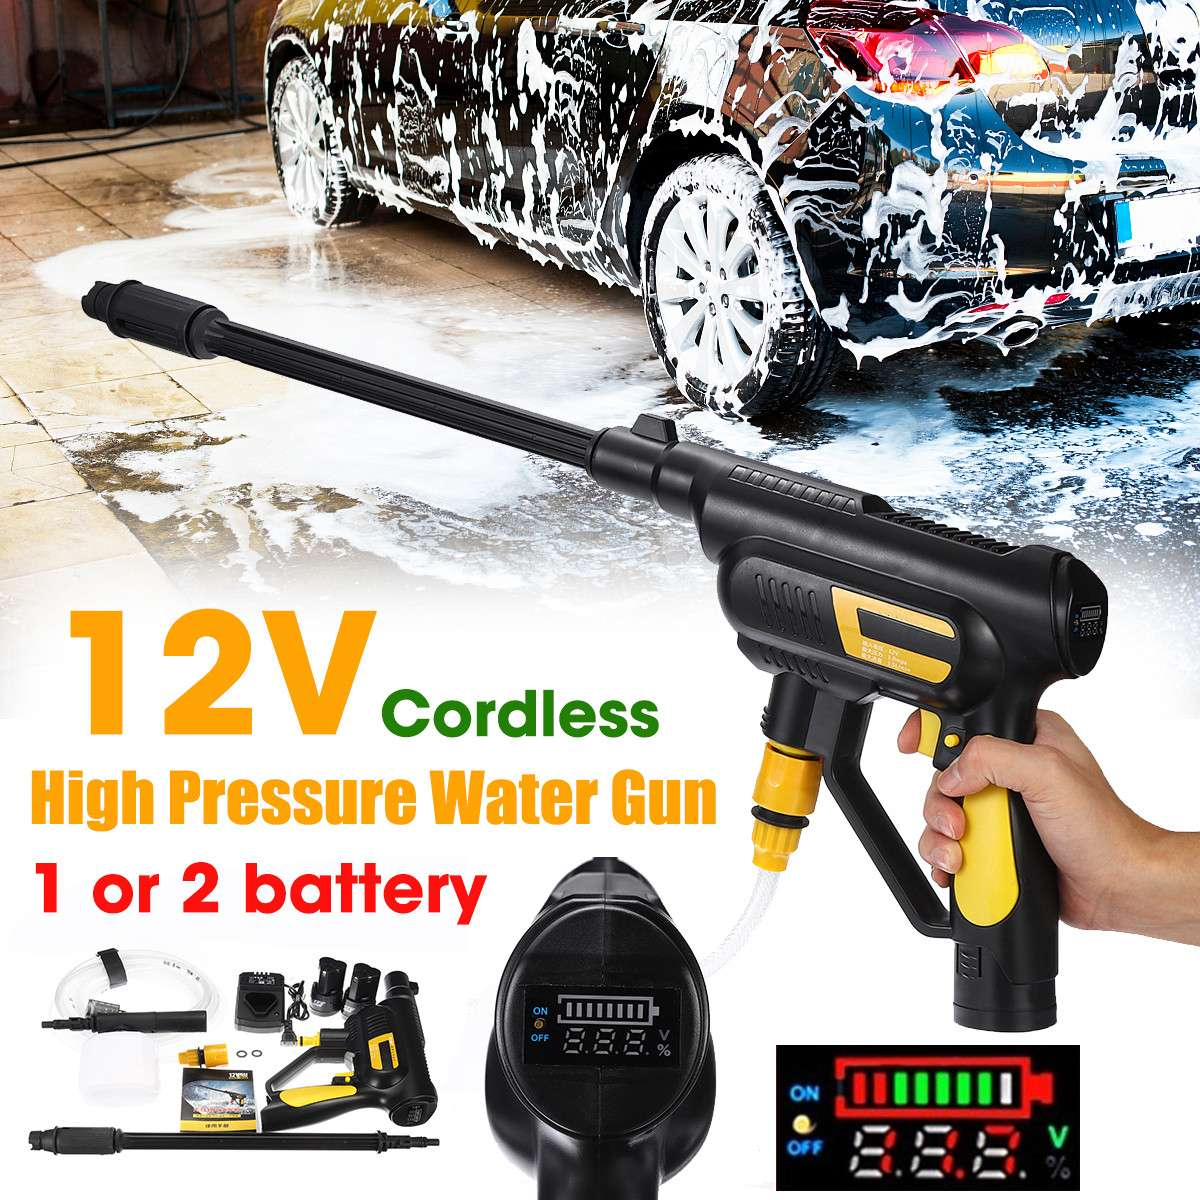 Car Washer 12V Cordless Portable High Pressure Cleaner Rechargable Self-priming Washing Machine Auto Garden Electric Cleaning